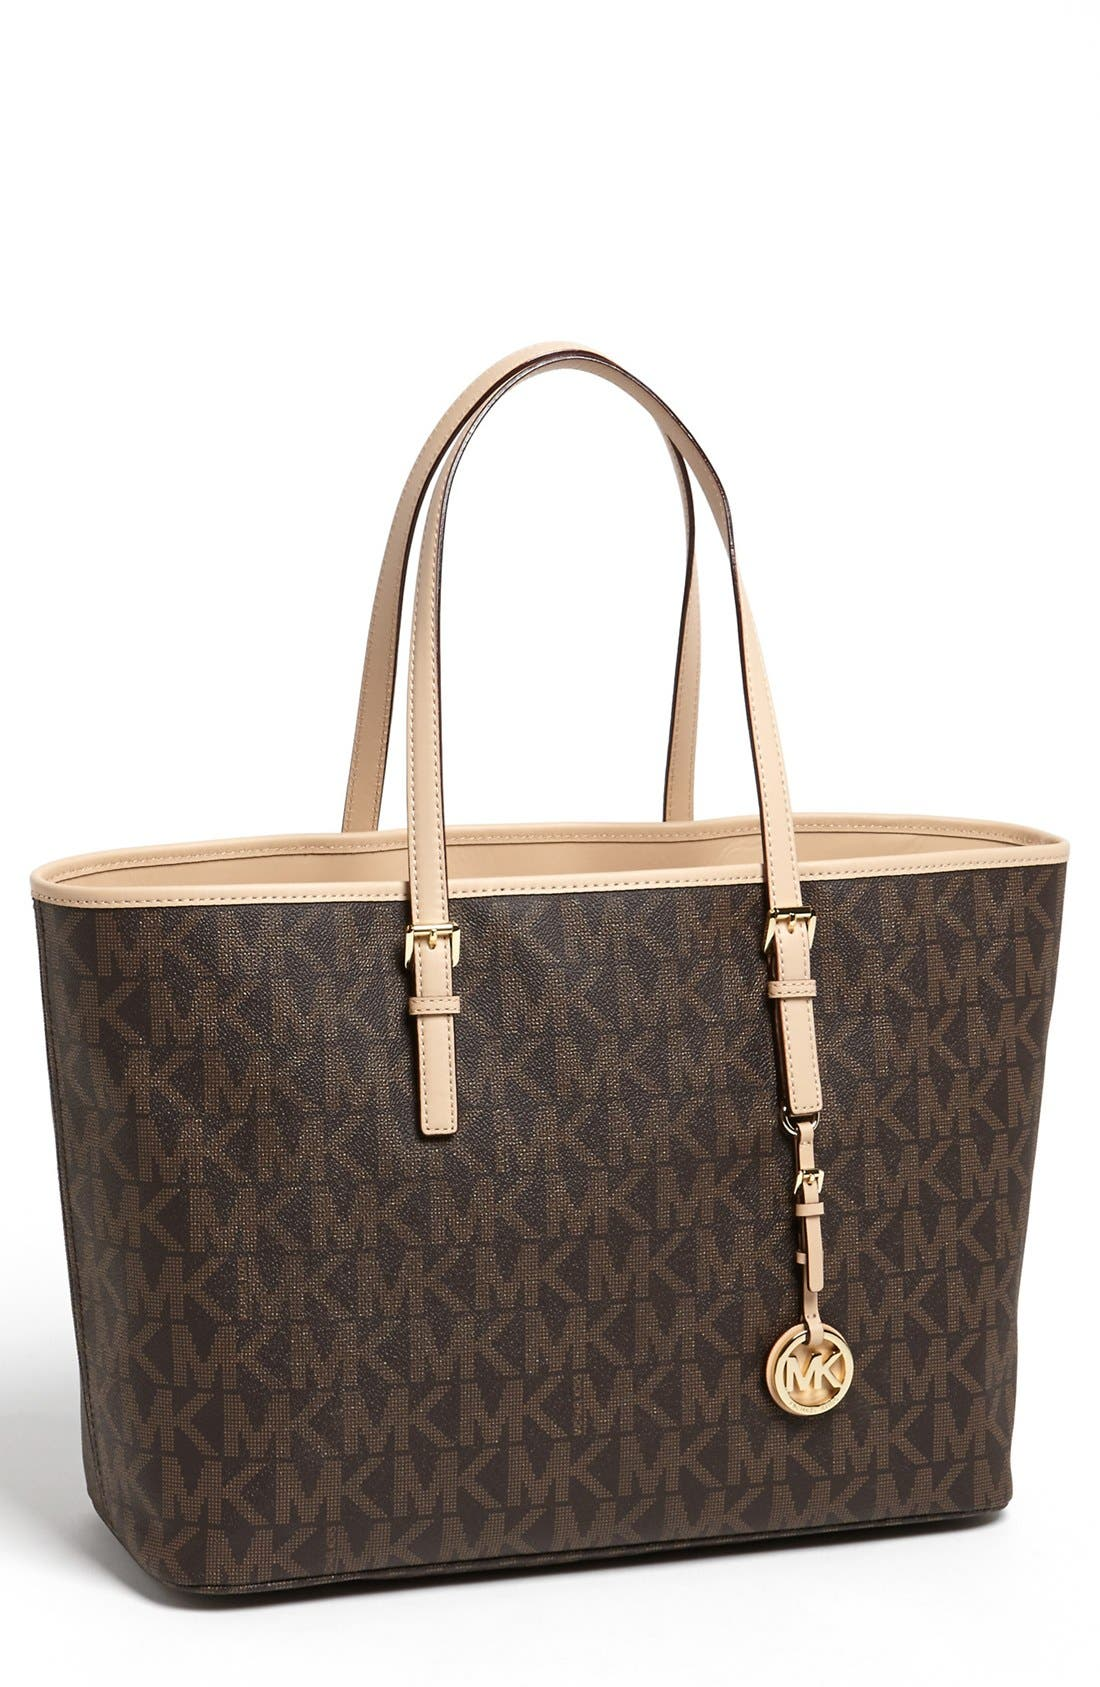 Alternate Image 1 Selected - MICHAEL Michael Kors 'Jet Set - Medium' Tech Tote